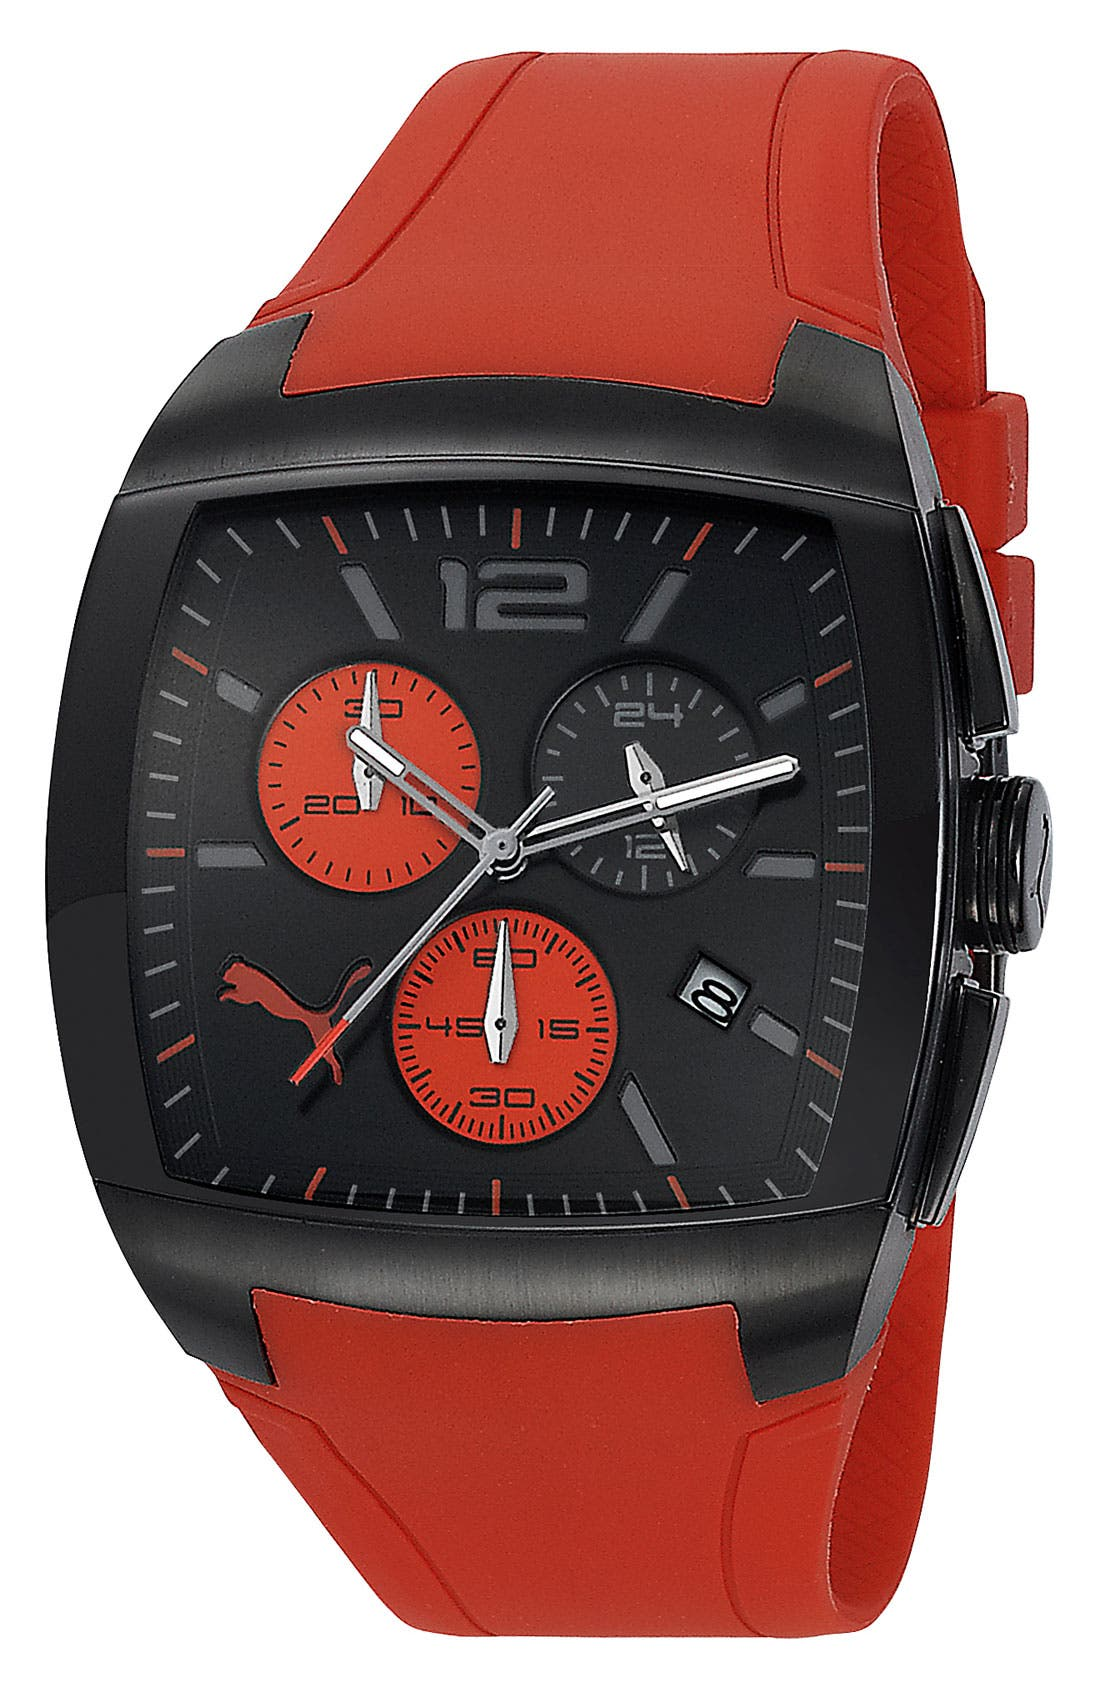 Alternate Image 1 Selected - PUMA 'GT Chronograph' Analog Watch, 44mm